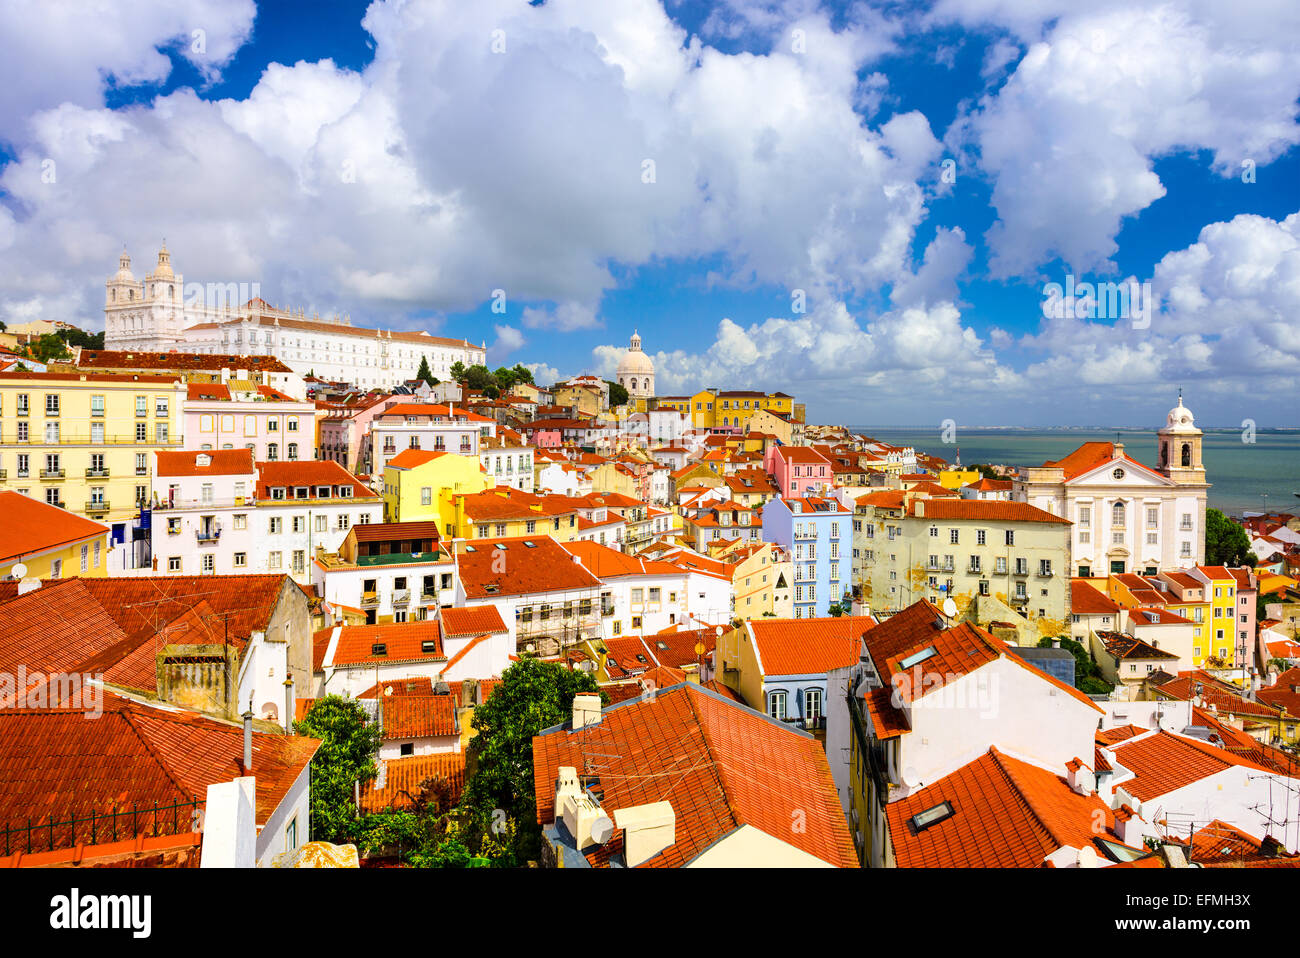 Lisbon, Portugal old town skyline in the Alfama district. Stock Photo